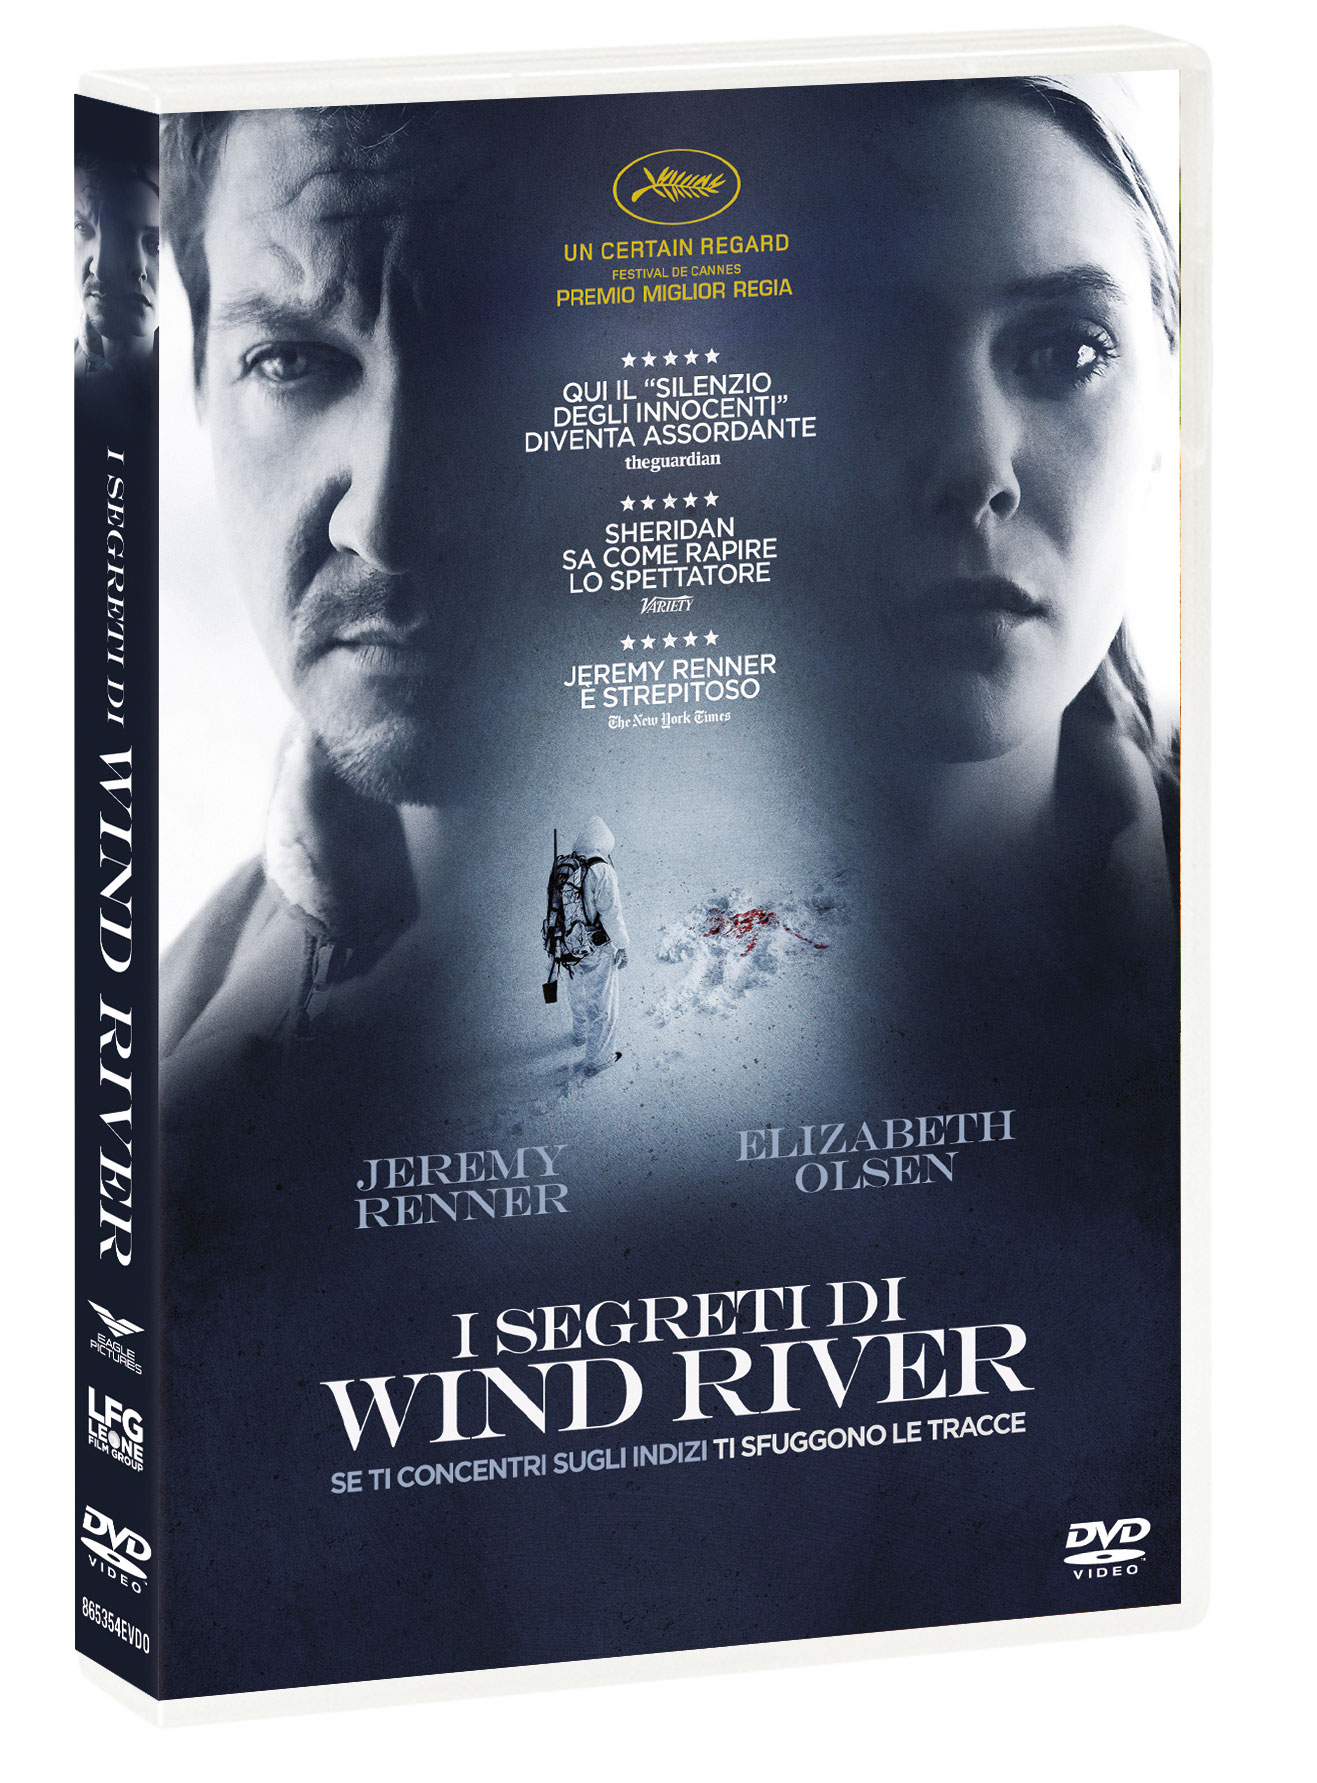 I SEGRETI DI WIND RIVER (DVD)